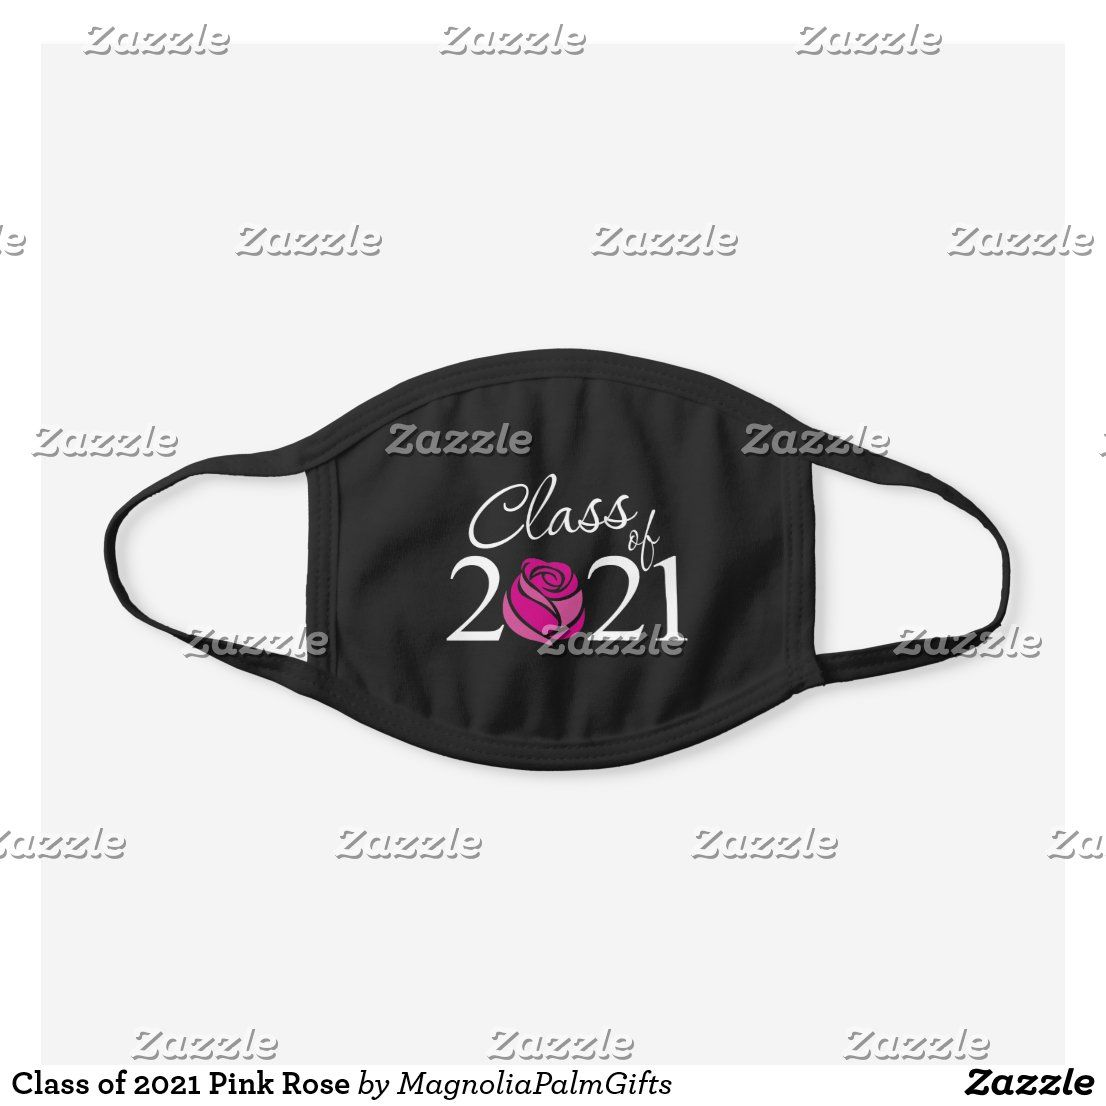 Class of 2021 pink rose black cotton face mask zazzle